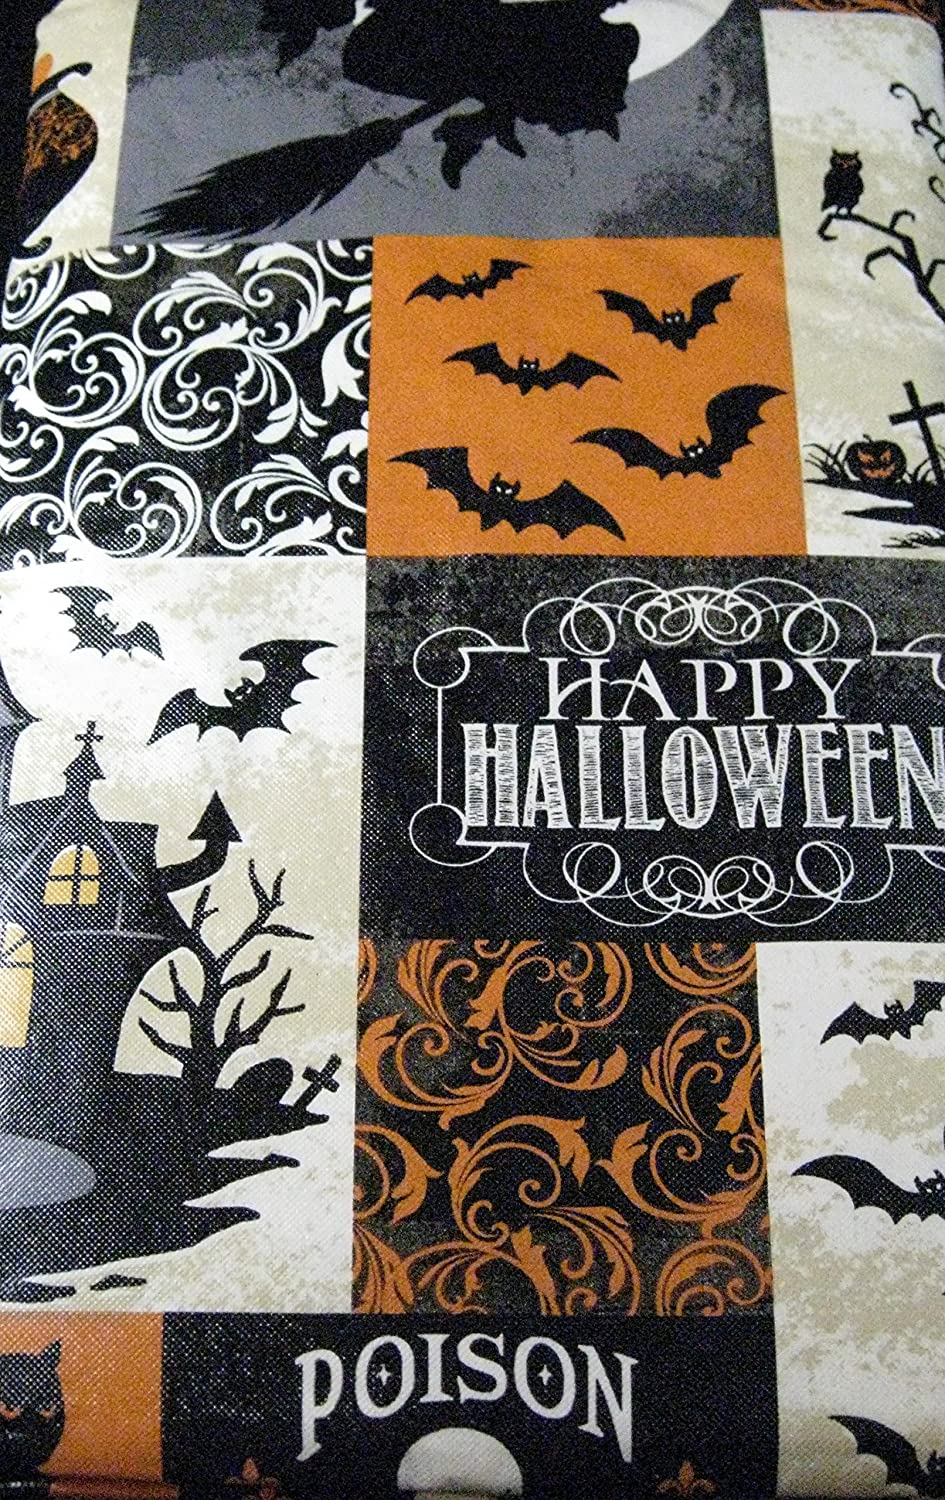 Halloween tablecloths - Amazon Com Haunted Halloween Flannel Back Vinyl Tablecloth By Elrene Assorted Sizes Up To 120 Inches Oblong And Round 52 X 70 Oblong Home Kitchen